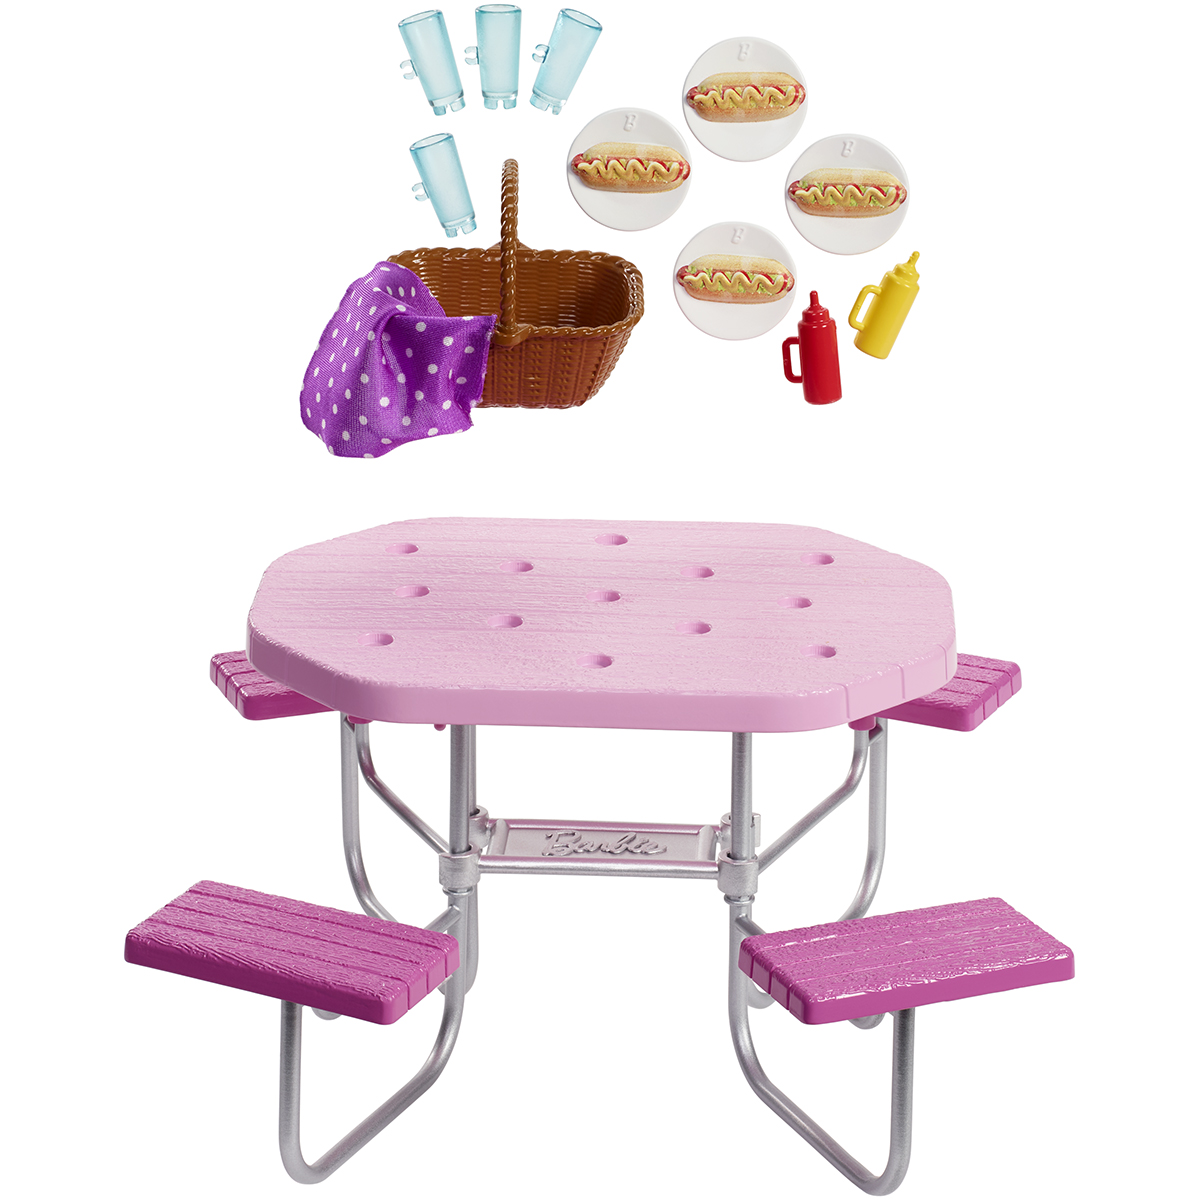 Set de joaca Barbie, Masa de picnic, FXG40